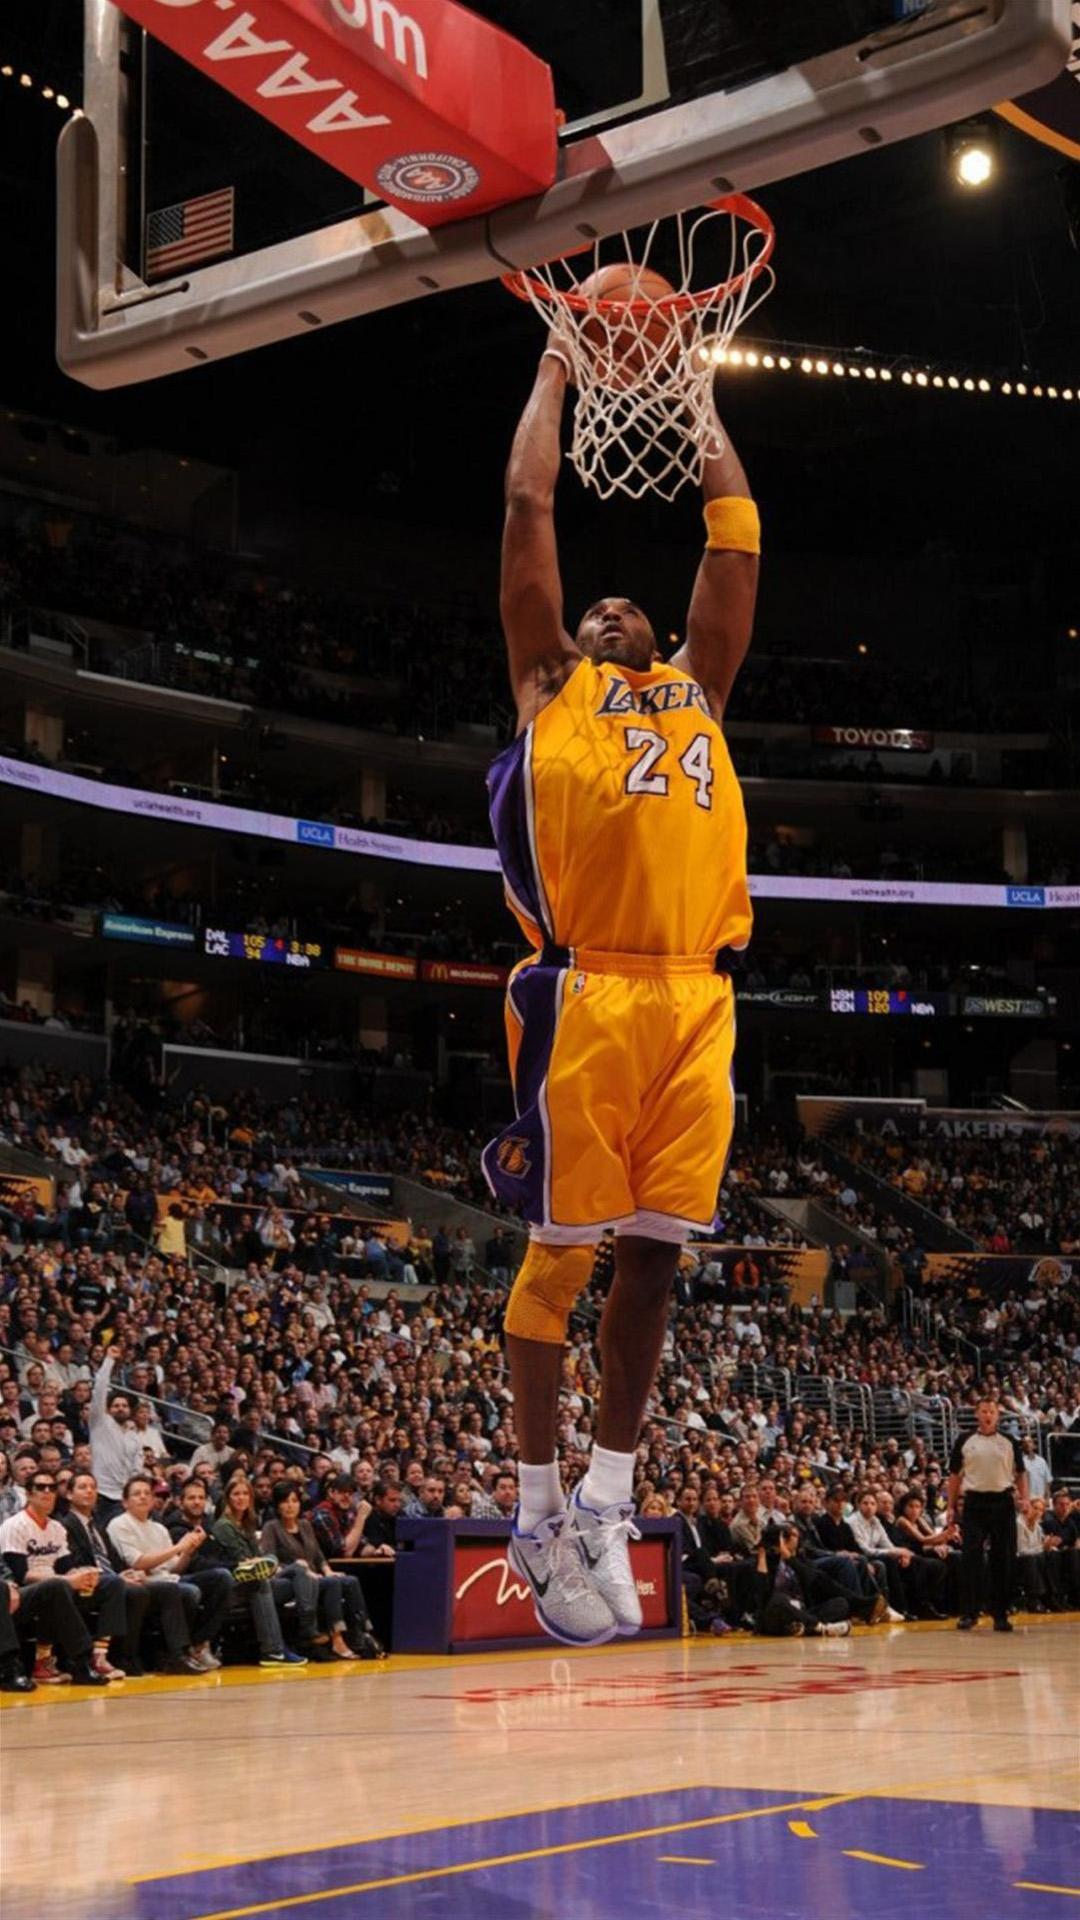 kobe bryant dunk wallpapers galaxy note dunking wallpapersafari background cave continue reading